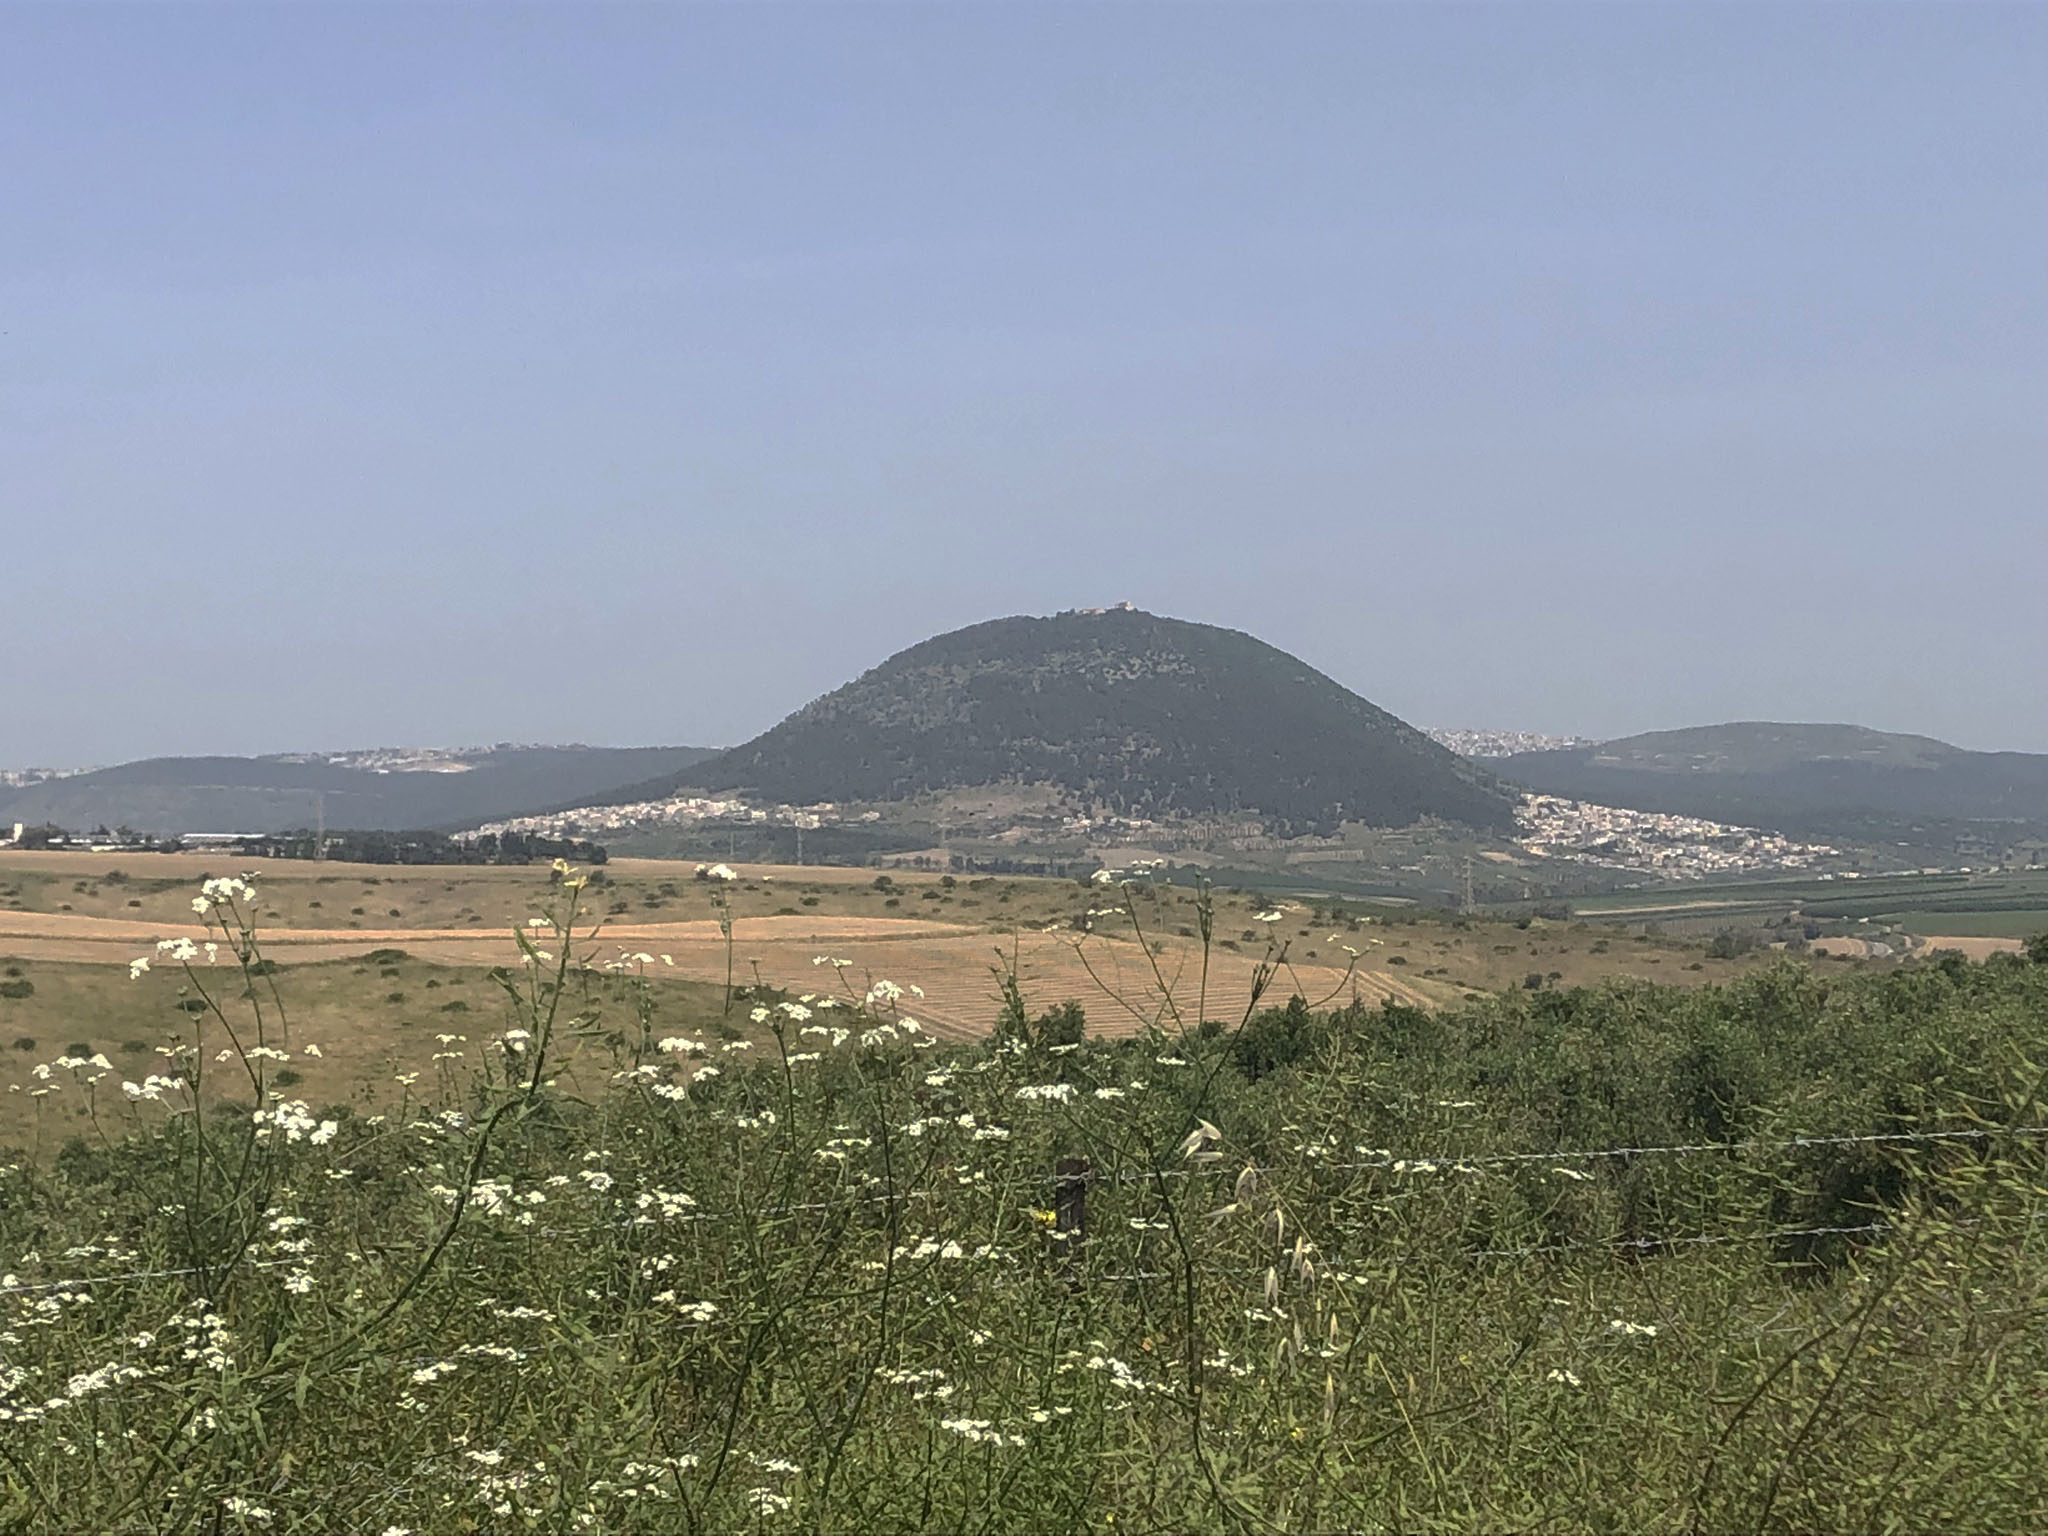 A view of Mount Tabor from Kibbutz Gazit